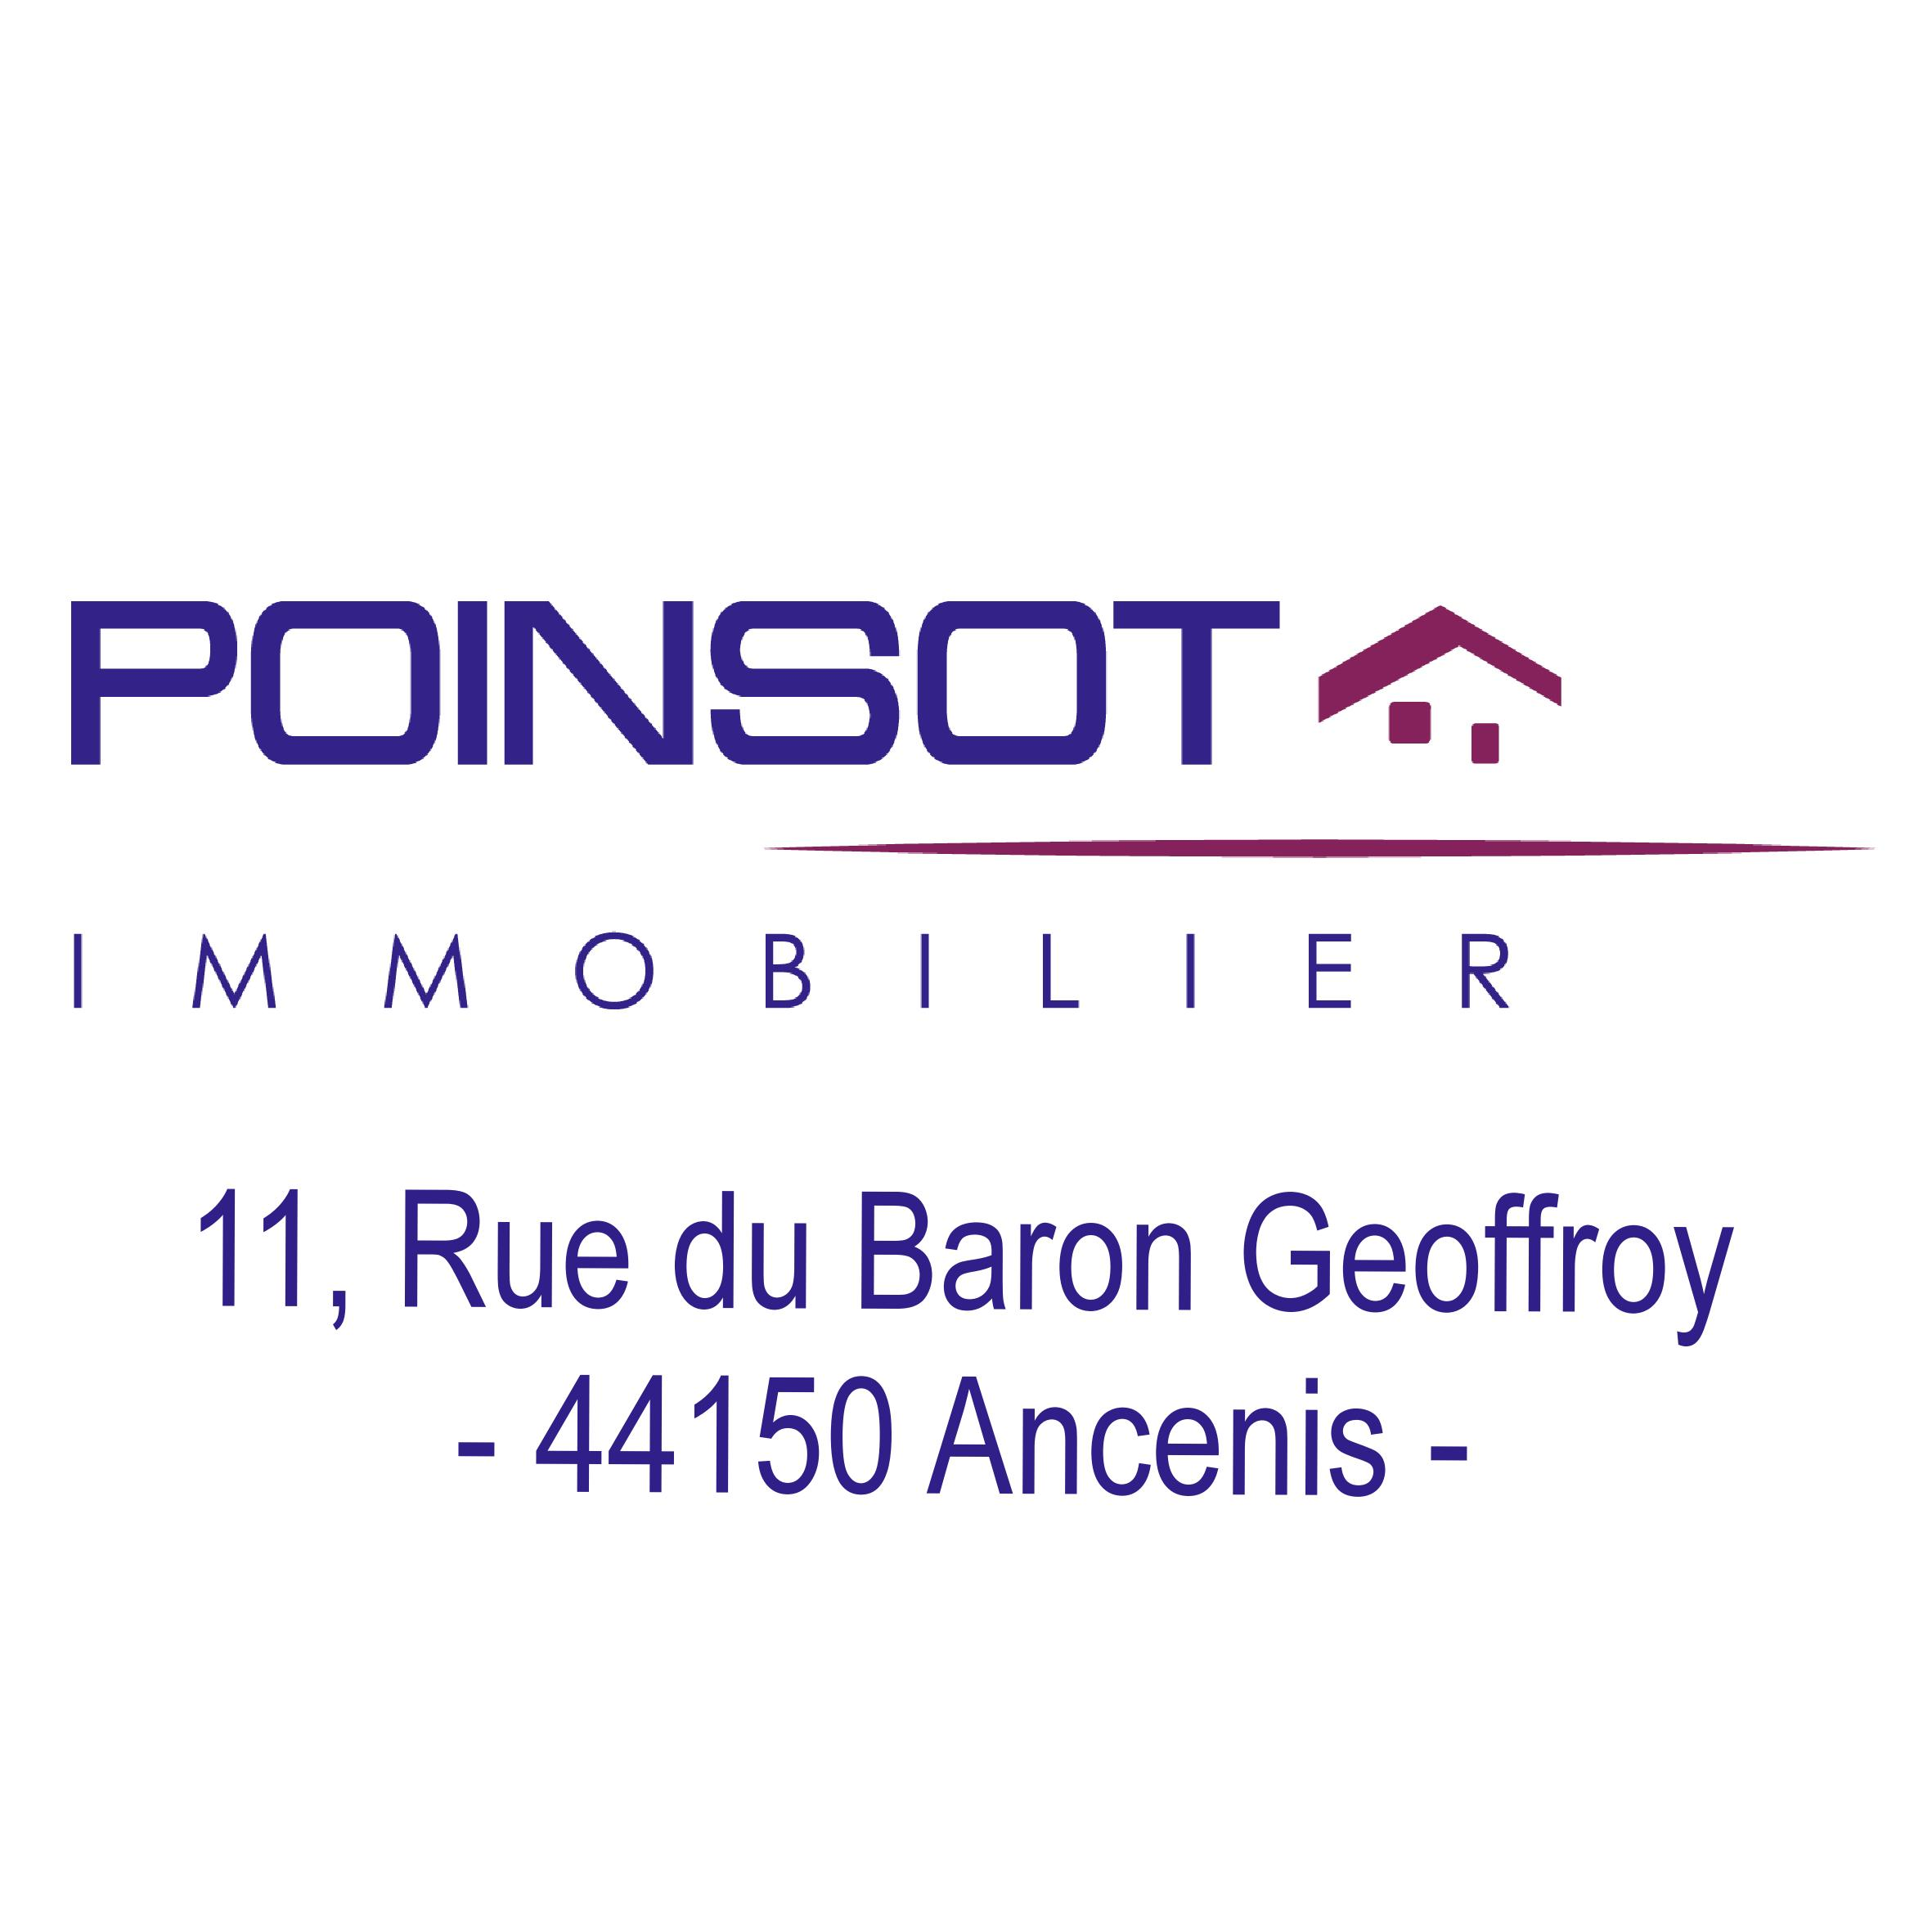 POINSOT Immobilier